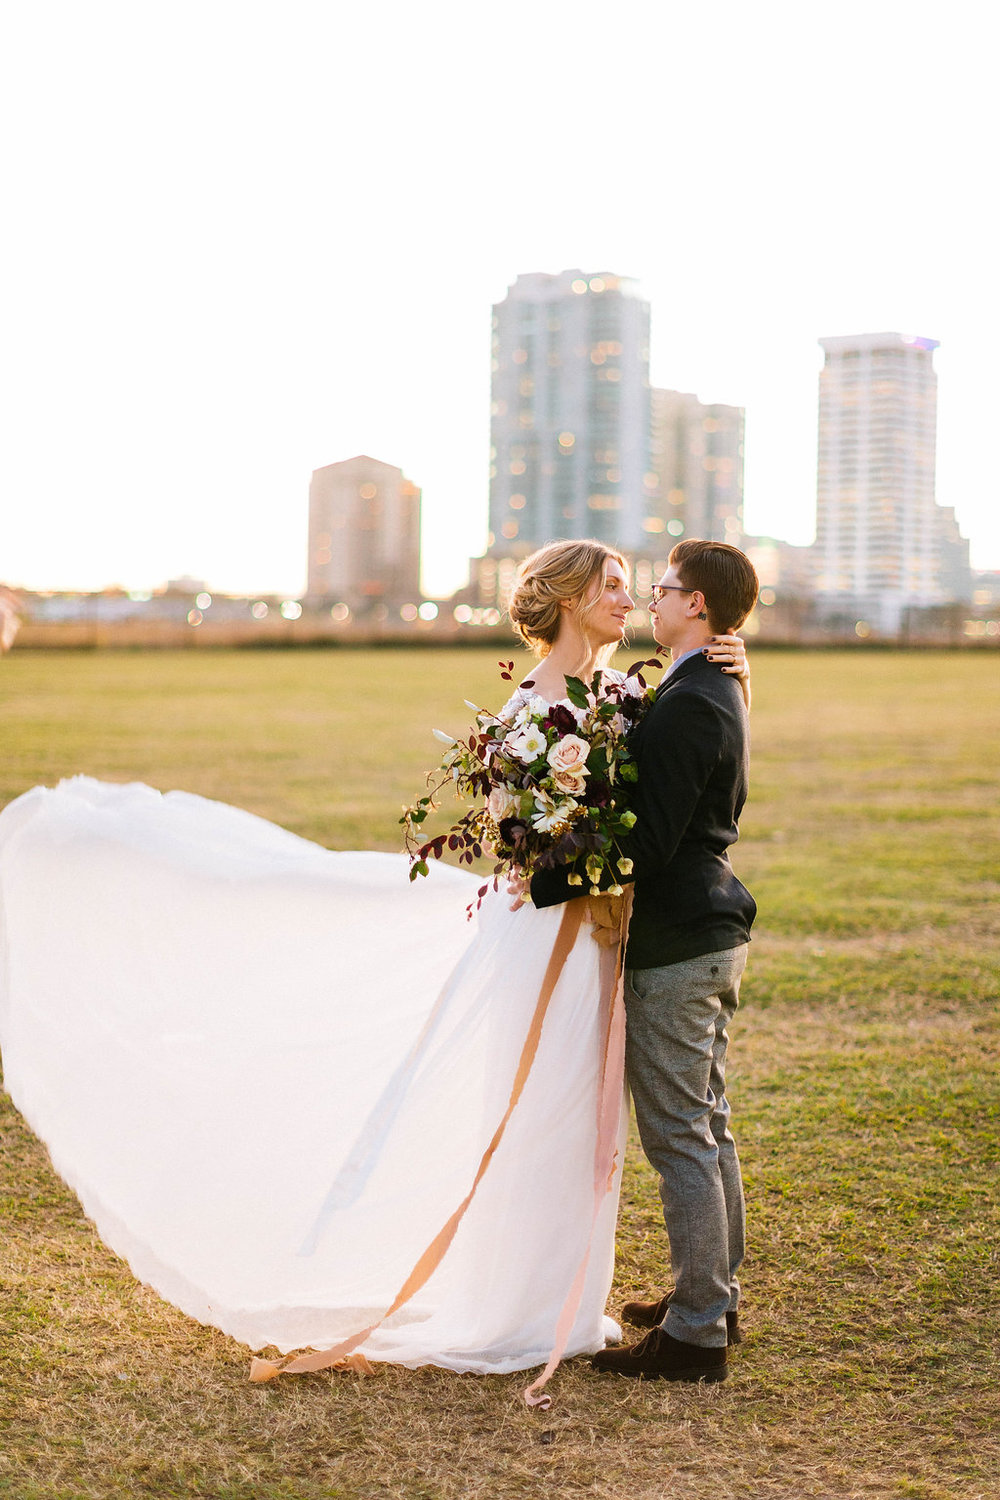 christina-karst-photography-jacksonville-wedding-photographer_intuition-brewery-ivory-and-beau-bridal-boutique-savannah-wedding-planner-savannah-bridal-boutique-coco-anna-campbell-jacksonville-bridal-savannah-florist-9.jpg